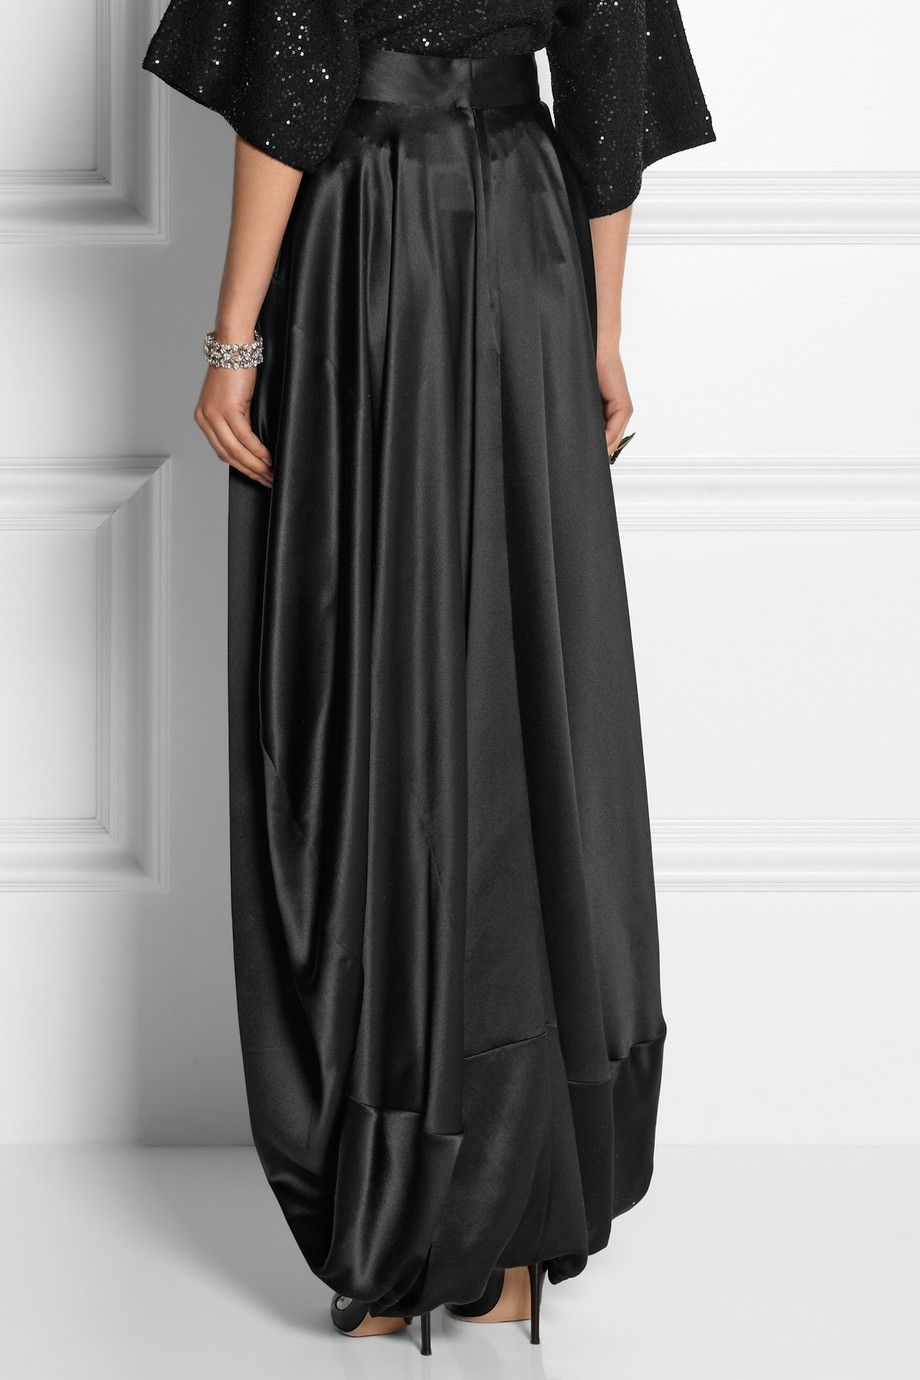 oscar-de-la-renta-black-silk-satin-maxi-skirt-product-1-19864721-0 ...